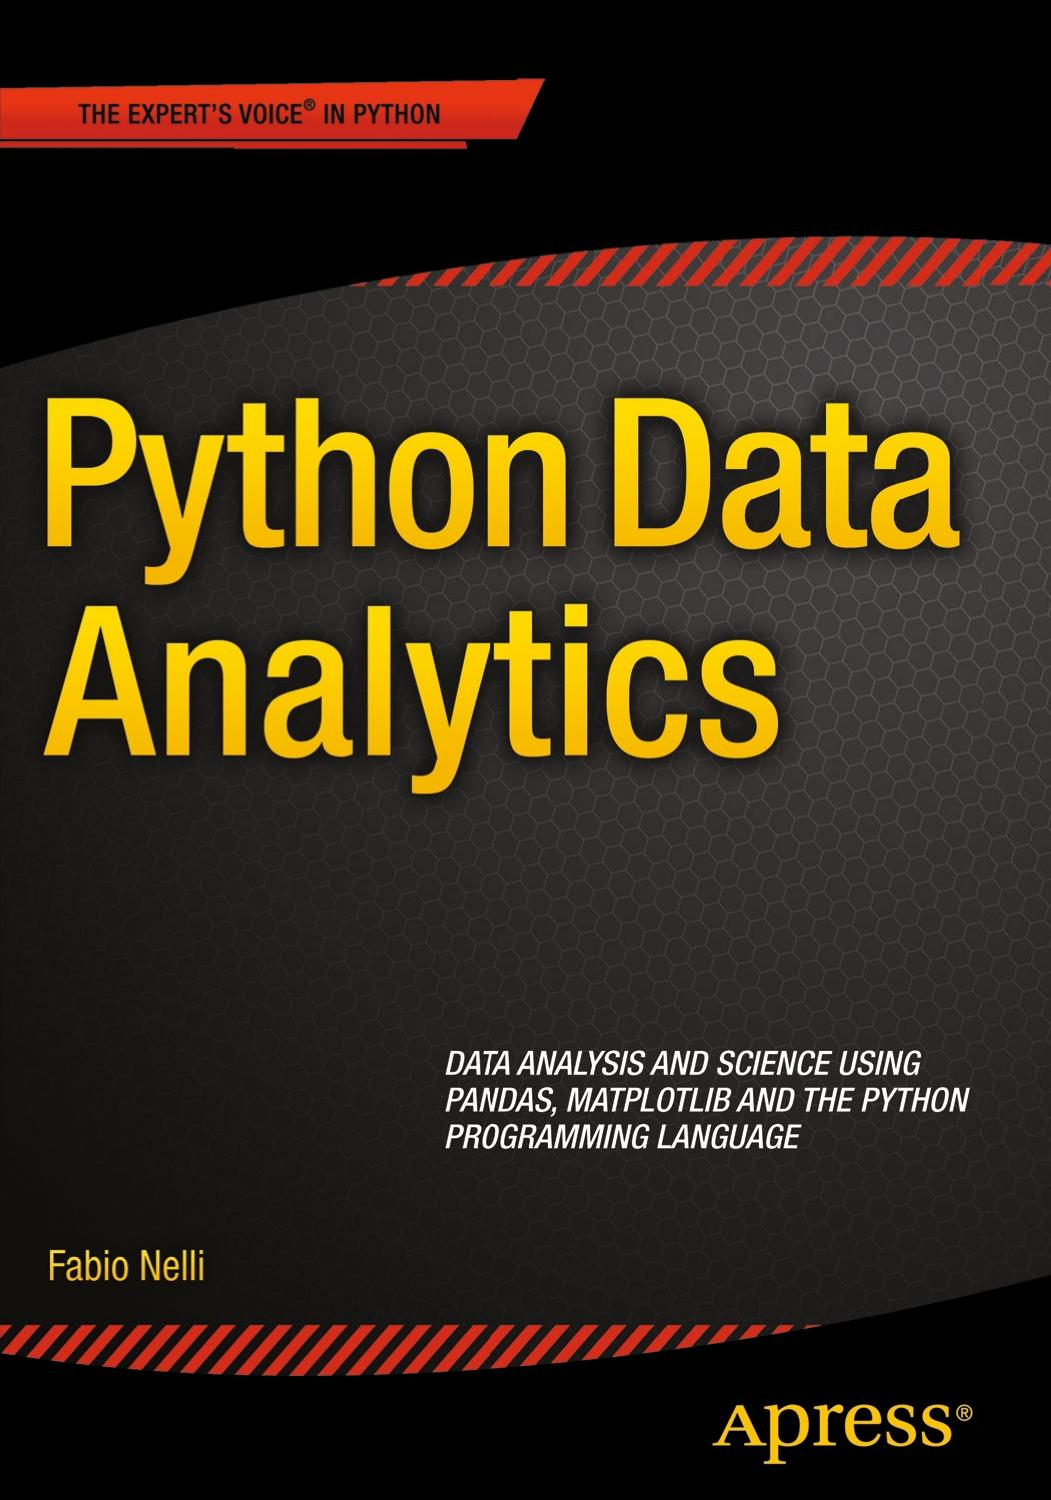 Python Data Analytics_ Data Analysis and Science Using